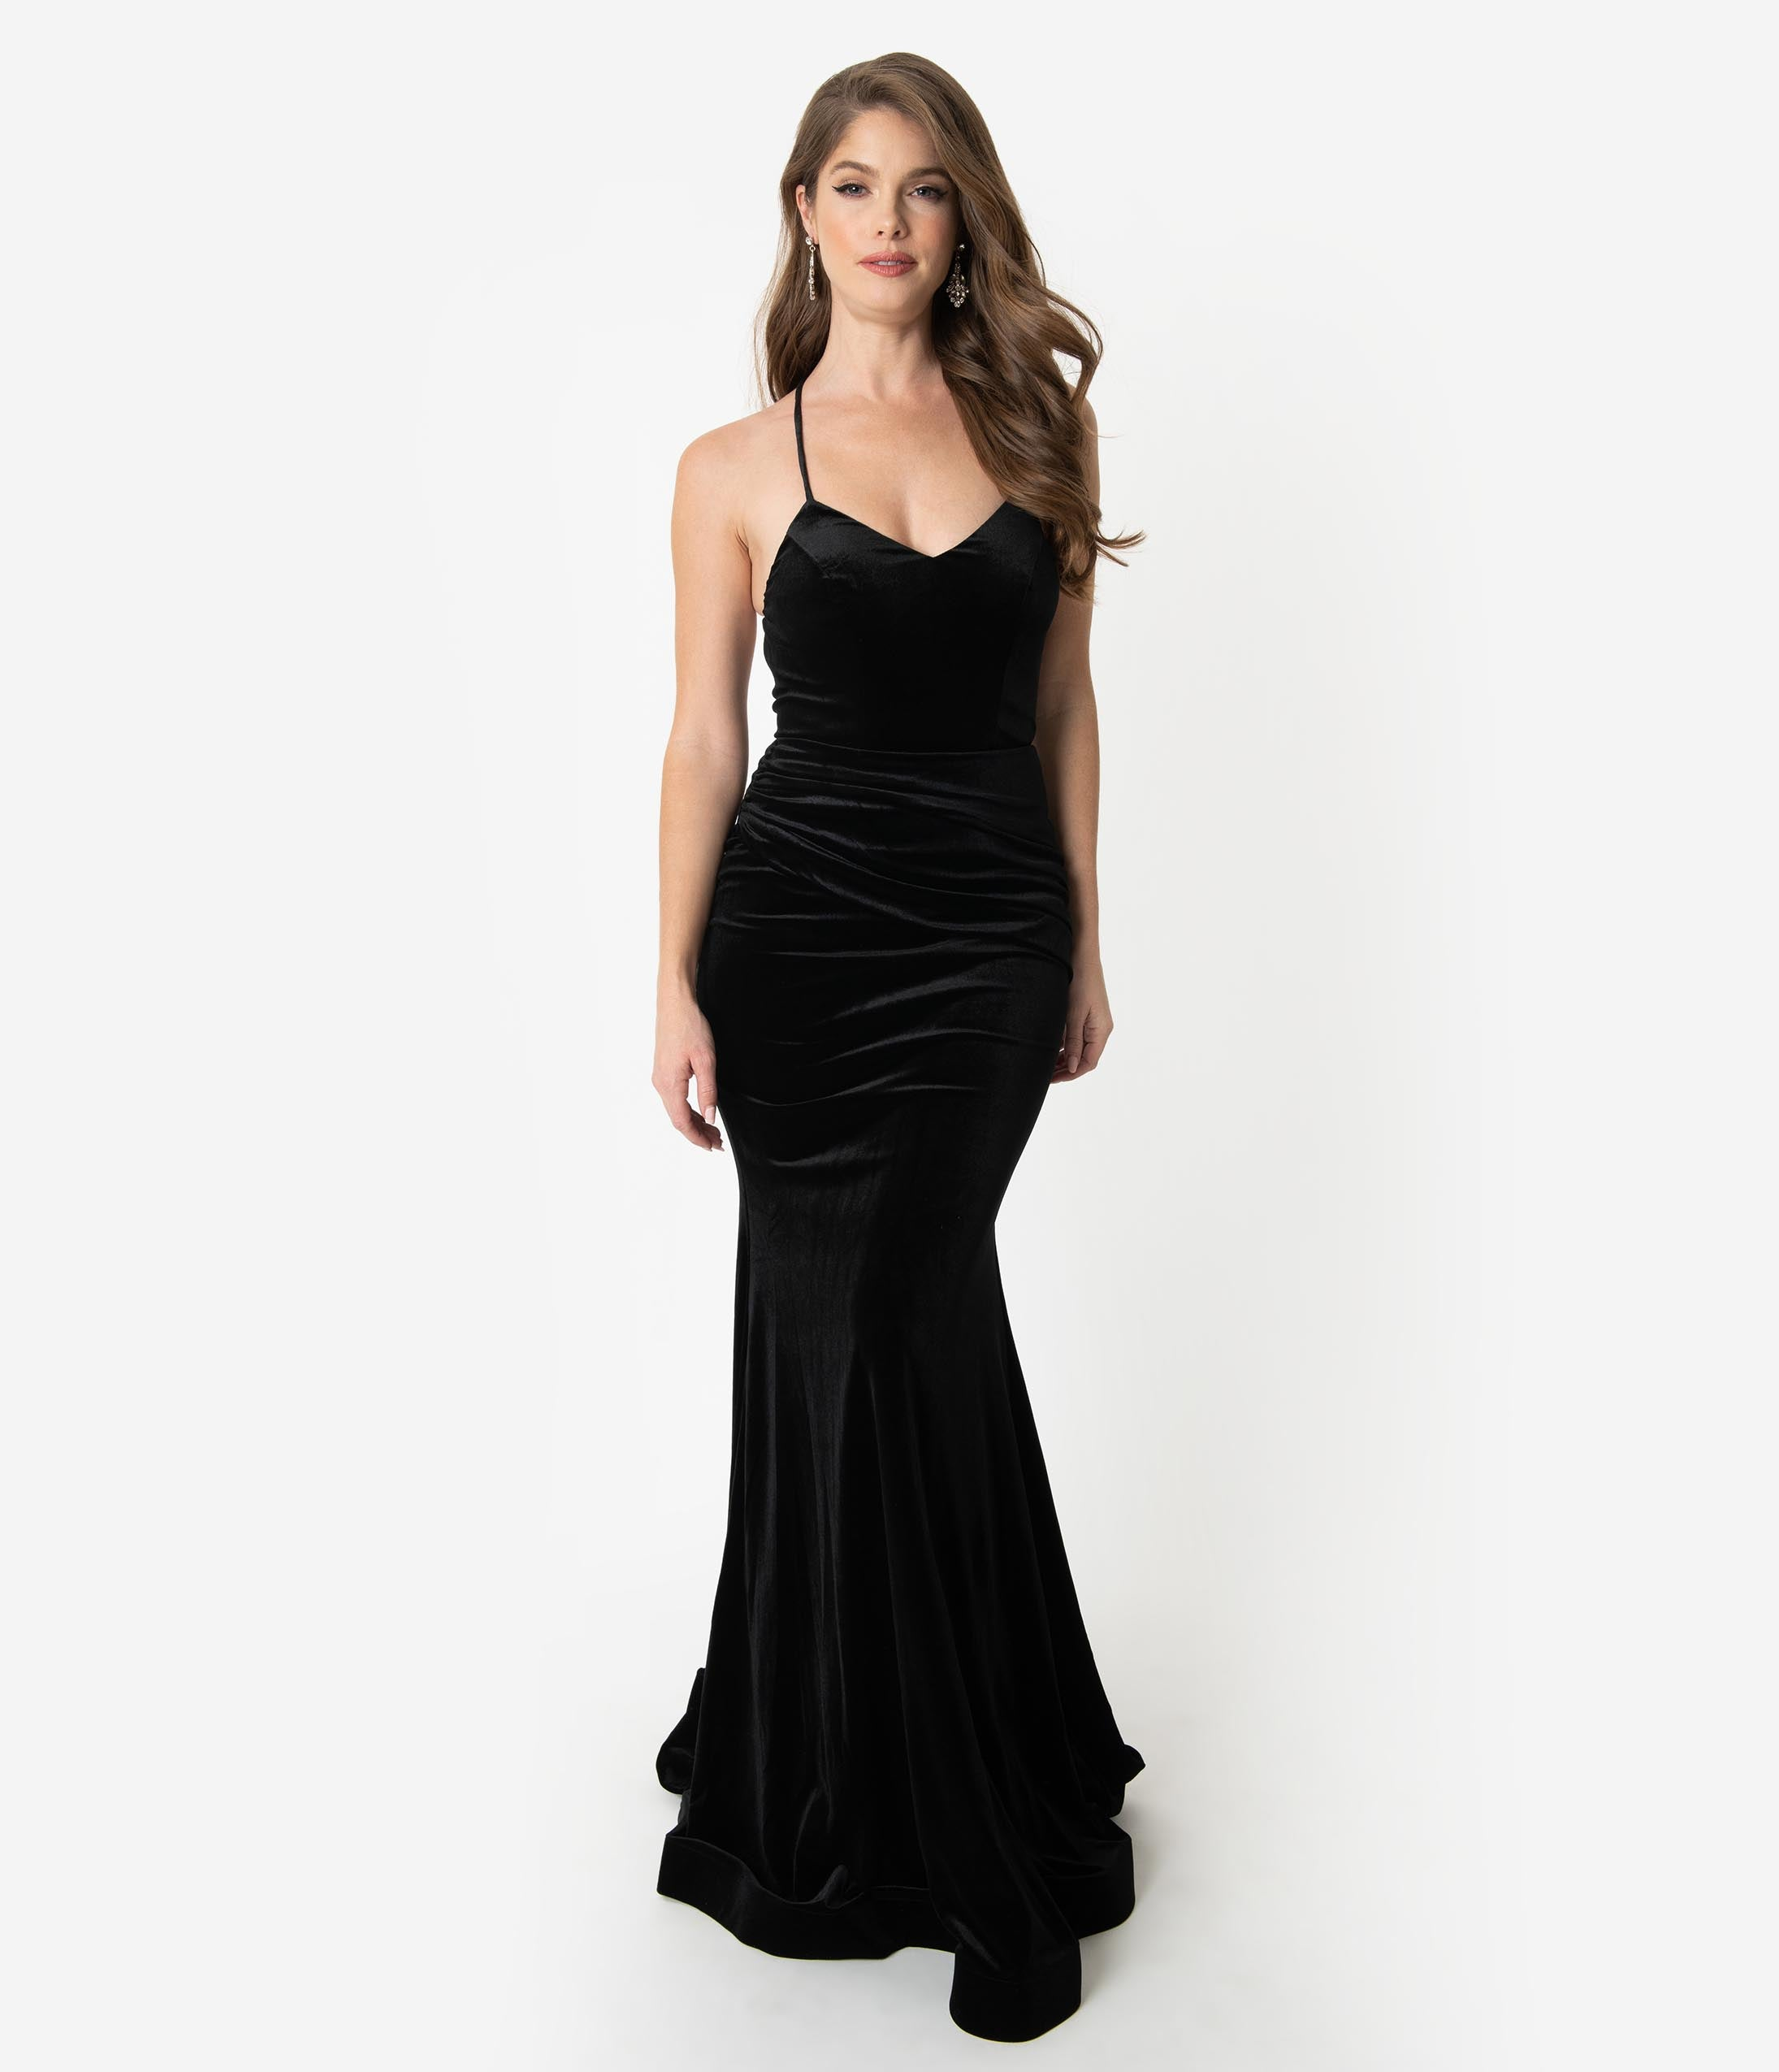 Pin Up Dresses | Pinup Clothing & Fashion Black Velvet Sexy Fitted Long Dress $130.00 AT vintagedancer.com